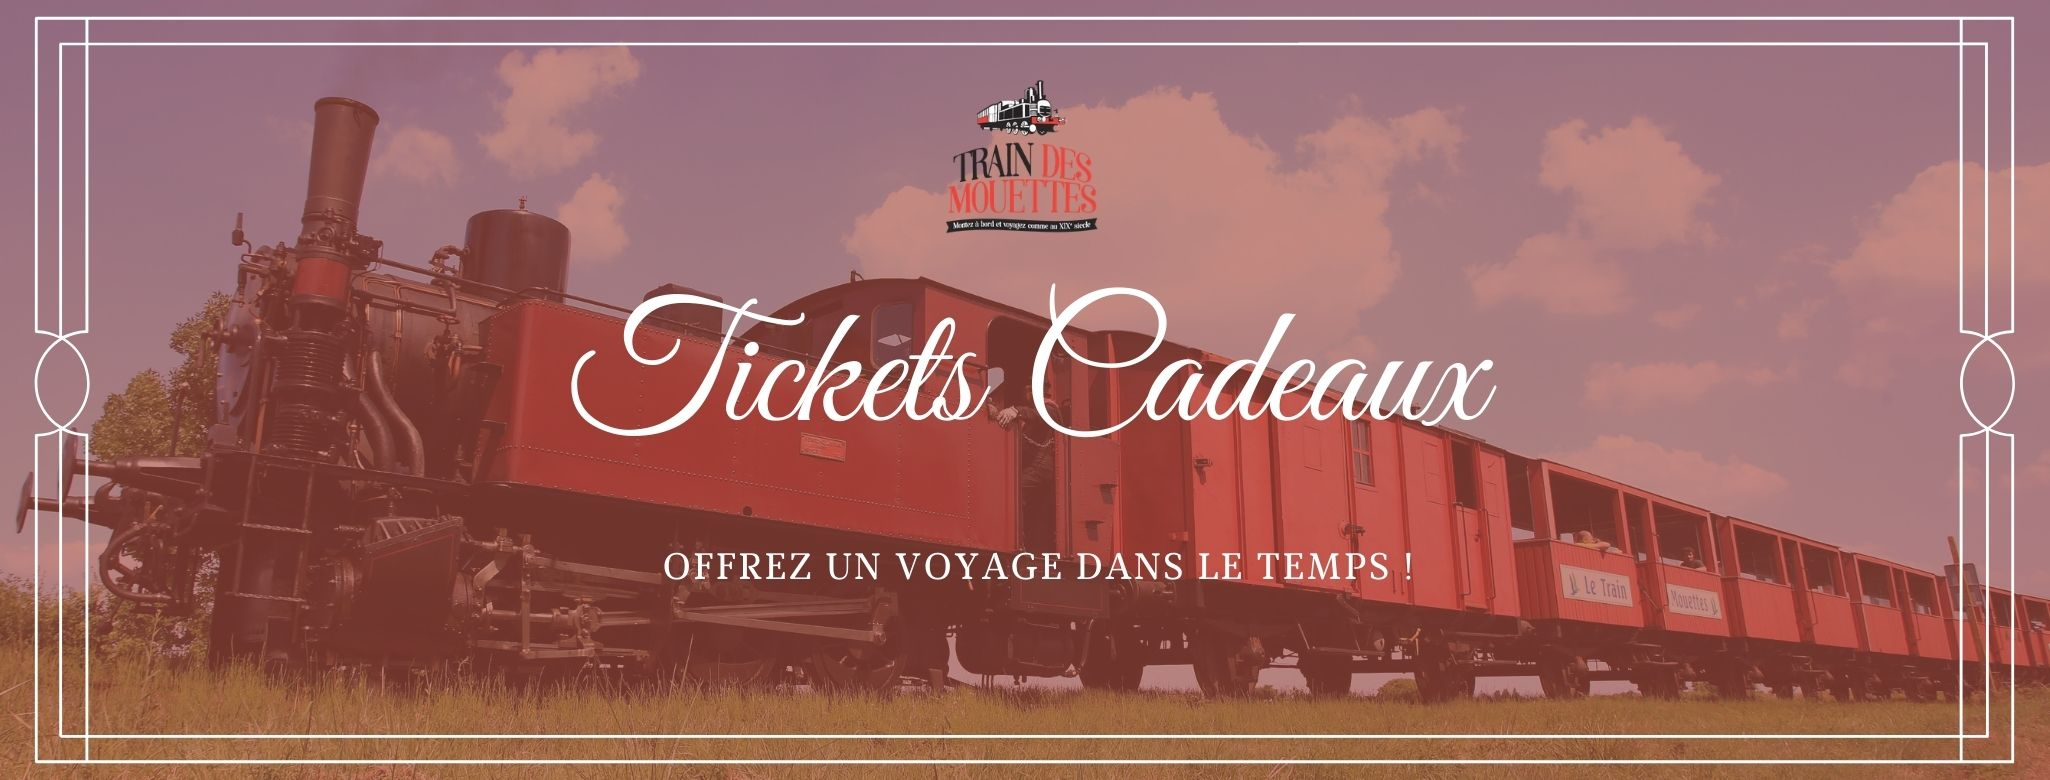 https://www.traindesmouettes.fr/wp-content/uploads/2020/12/banniere-tickets-cadeaux.jpg